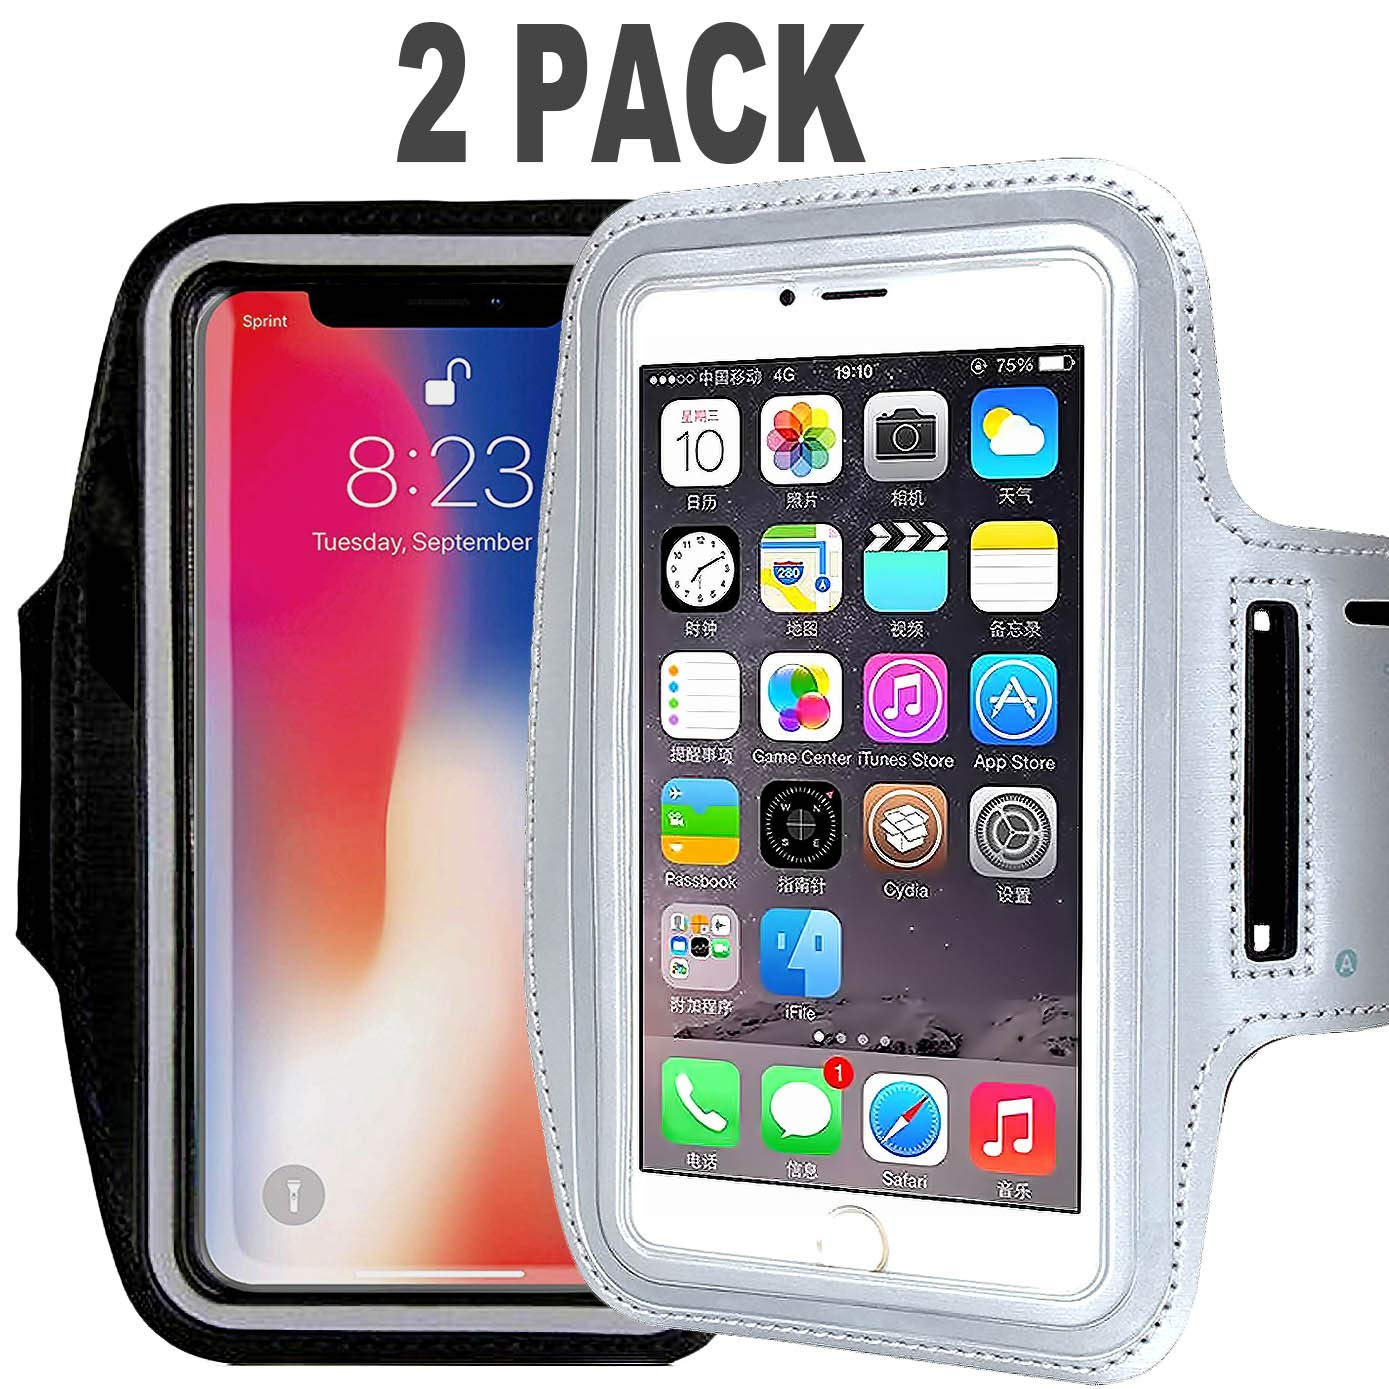 [2Pack] Water Resistant Cell Phone Armband Case CaseHQ for iPhone X, Xs,XR,MAX 8, 7, 6, 6S Plus, Galaxy S9, S8, S7, S6, A8 Adjustable Band,Key Pouch Holder Pouch Running,Walking, Hiking,Black Silver